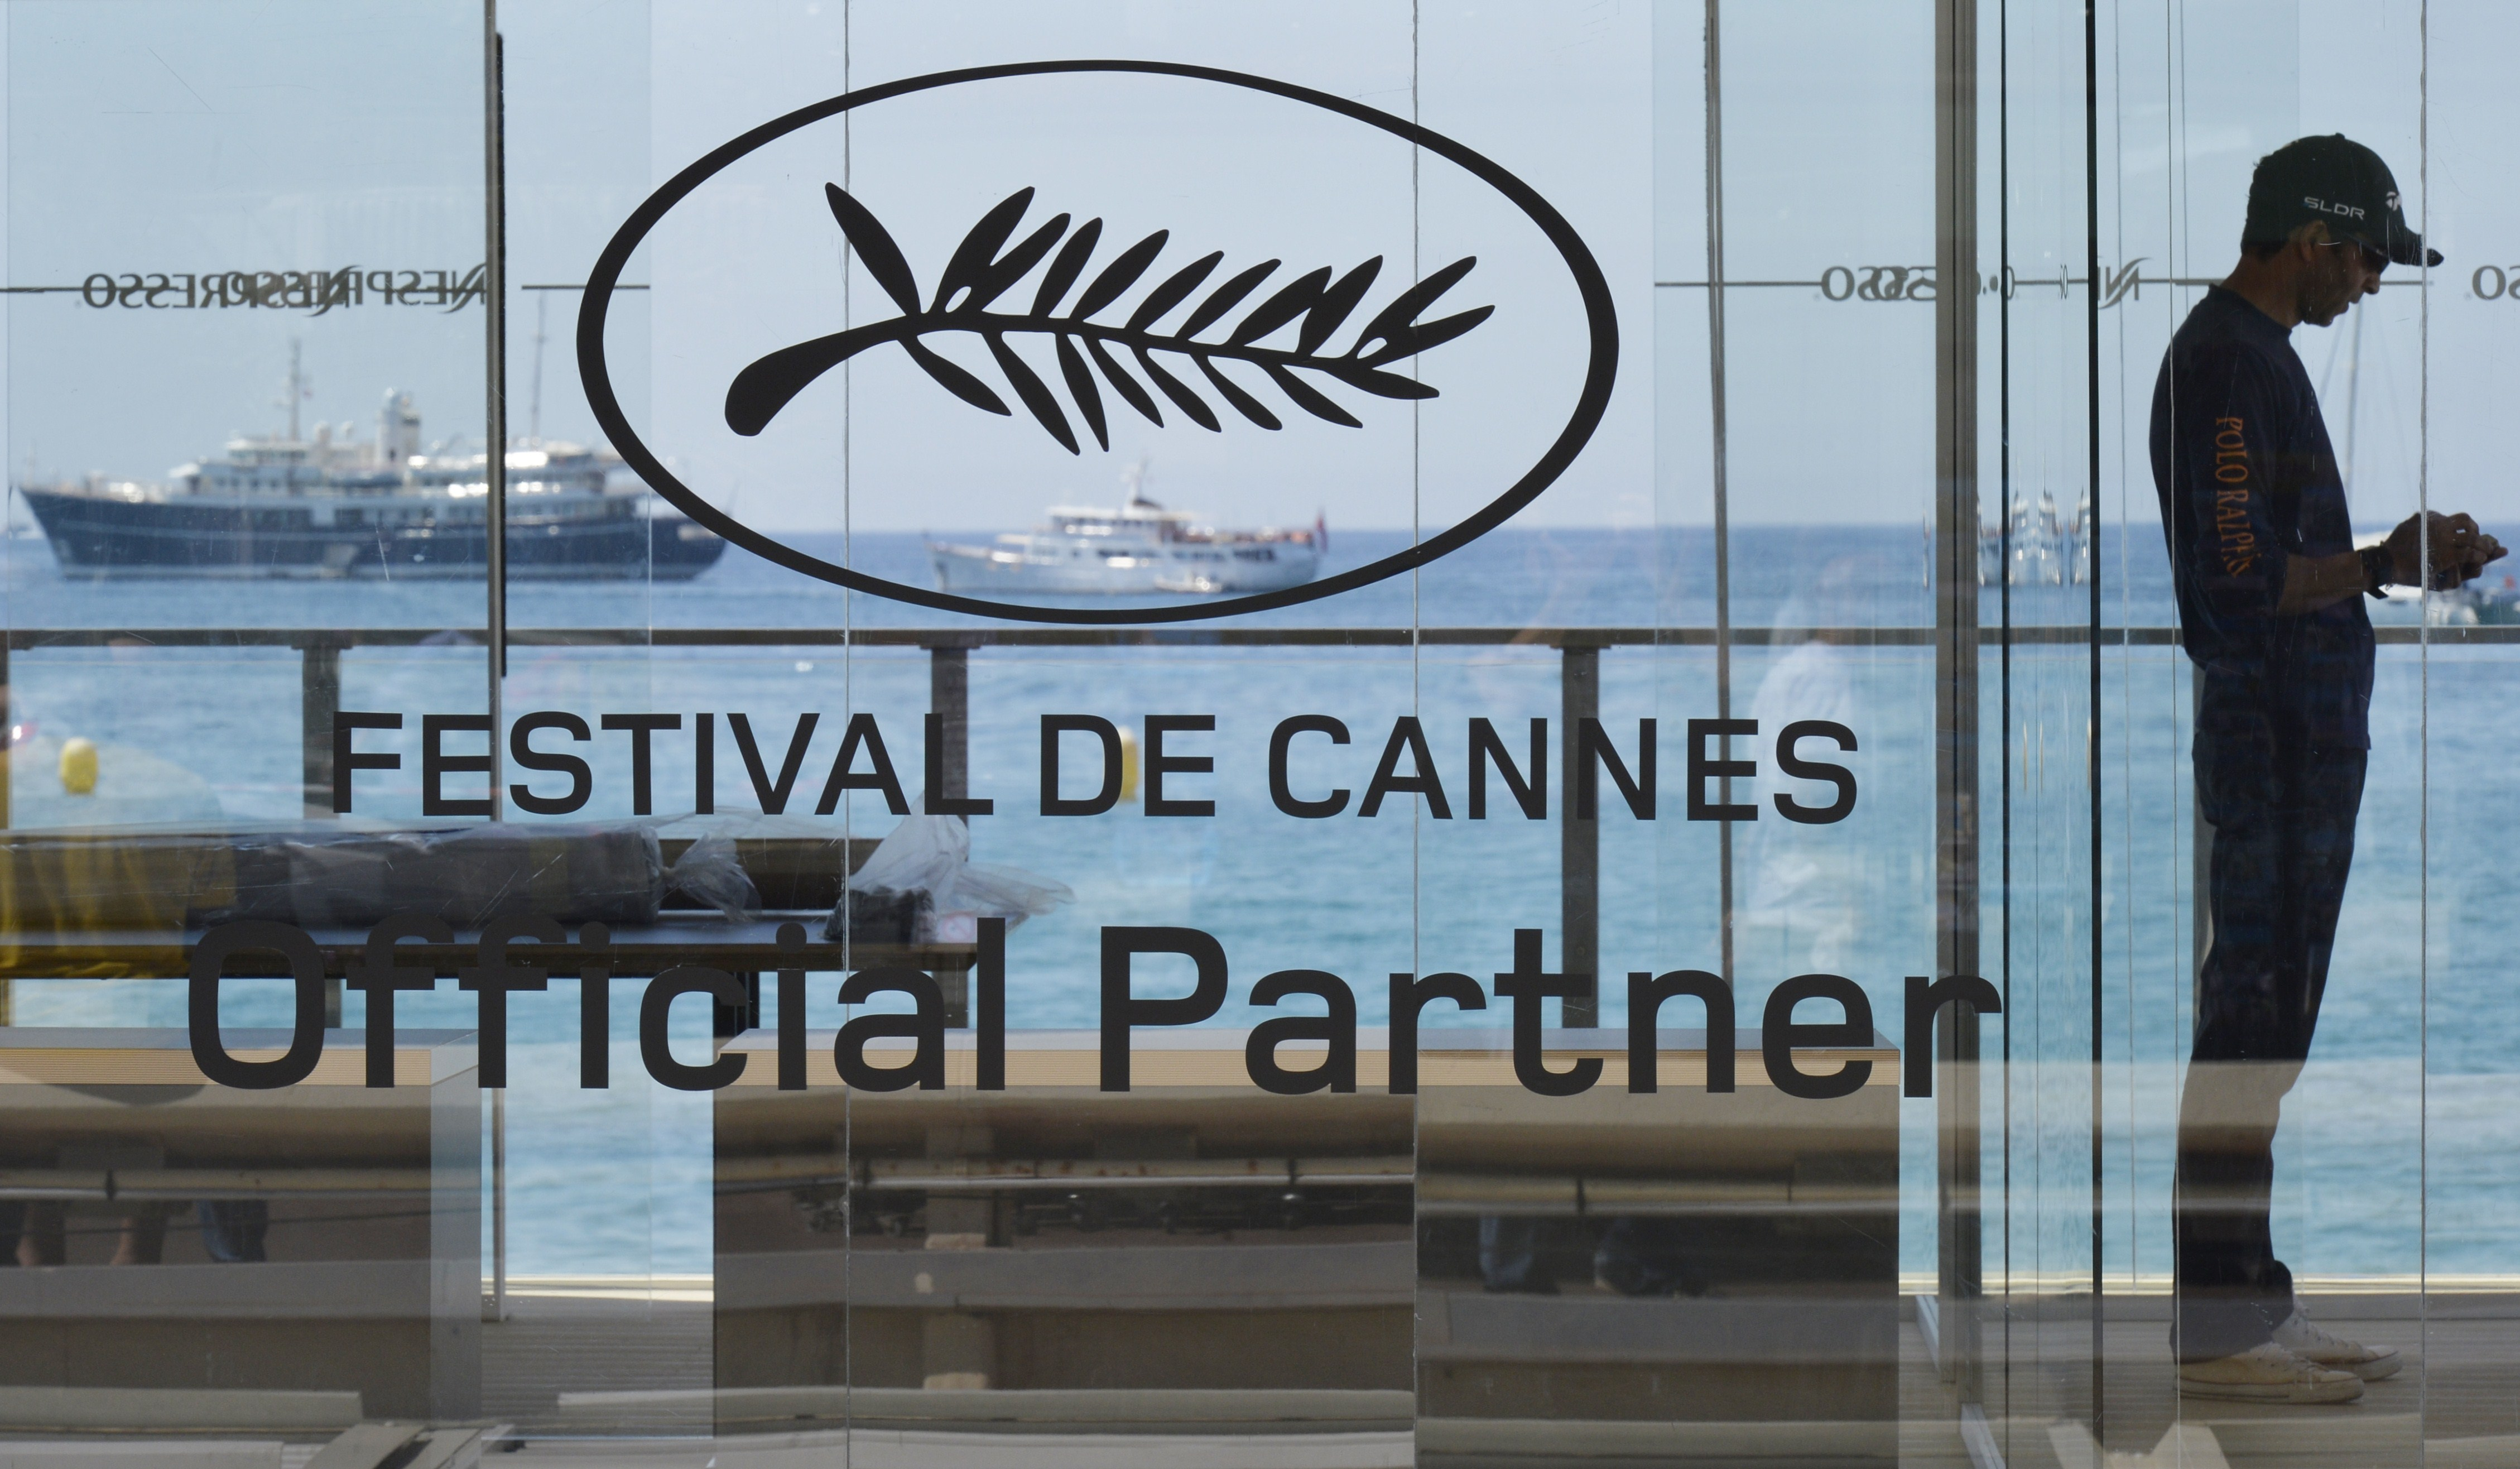 The logo of the festival on the eve of the 68th Cannes Film Festival in Cannes, southeastern France on May 12, 2015.